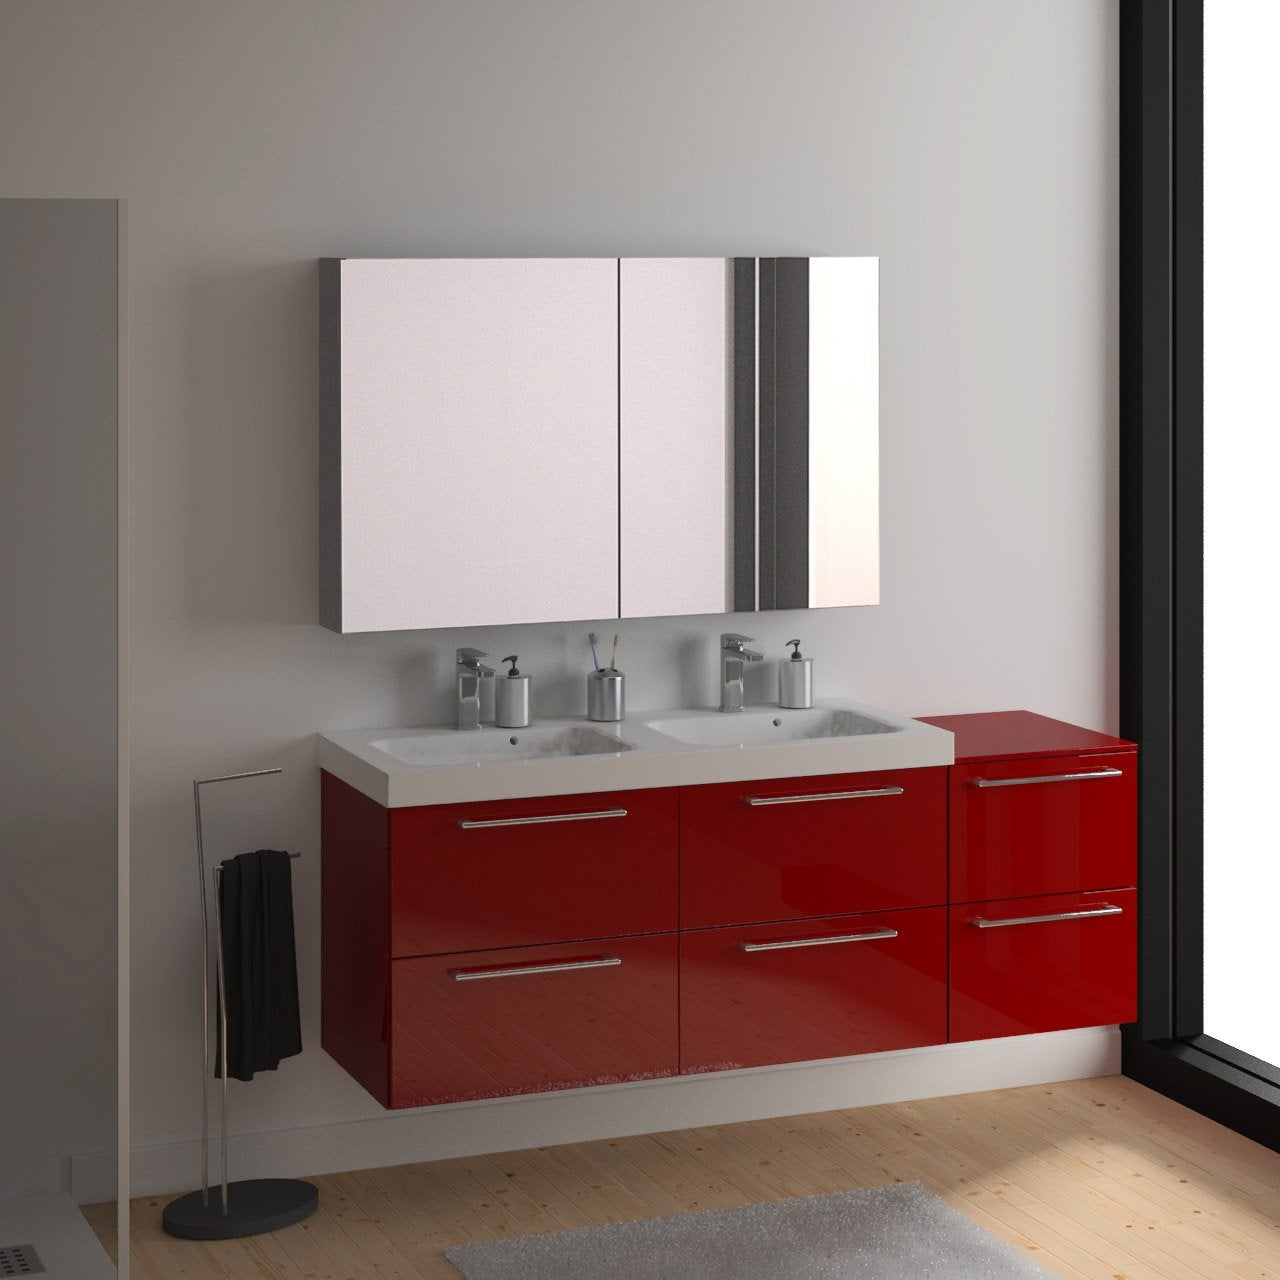 Meuble vasque 121 cm rouge remix leroy merlin for Meuble salle de bain double vasque leroy merlin